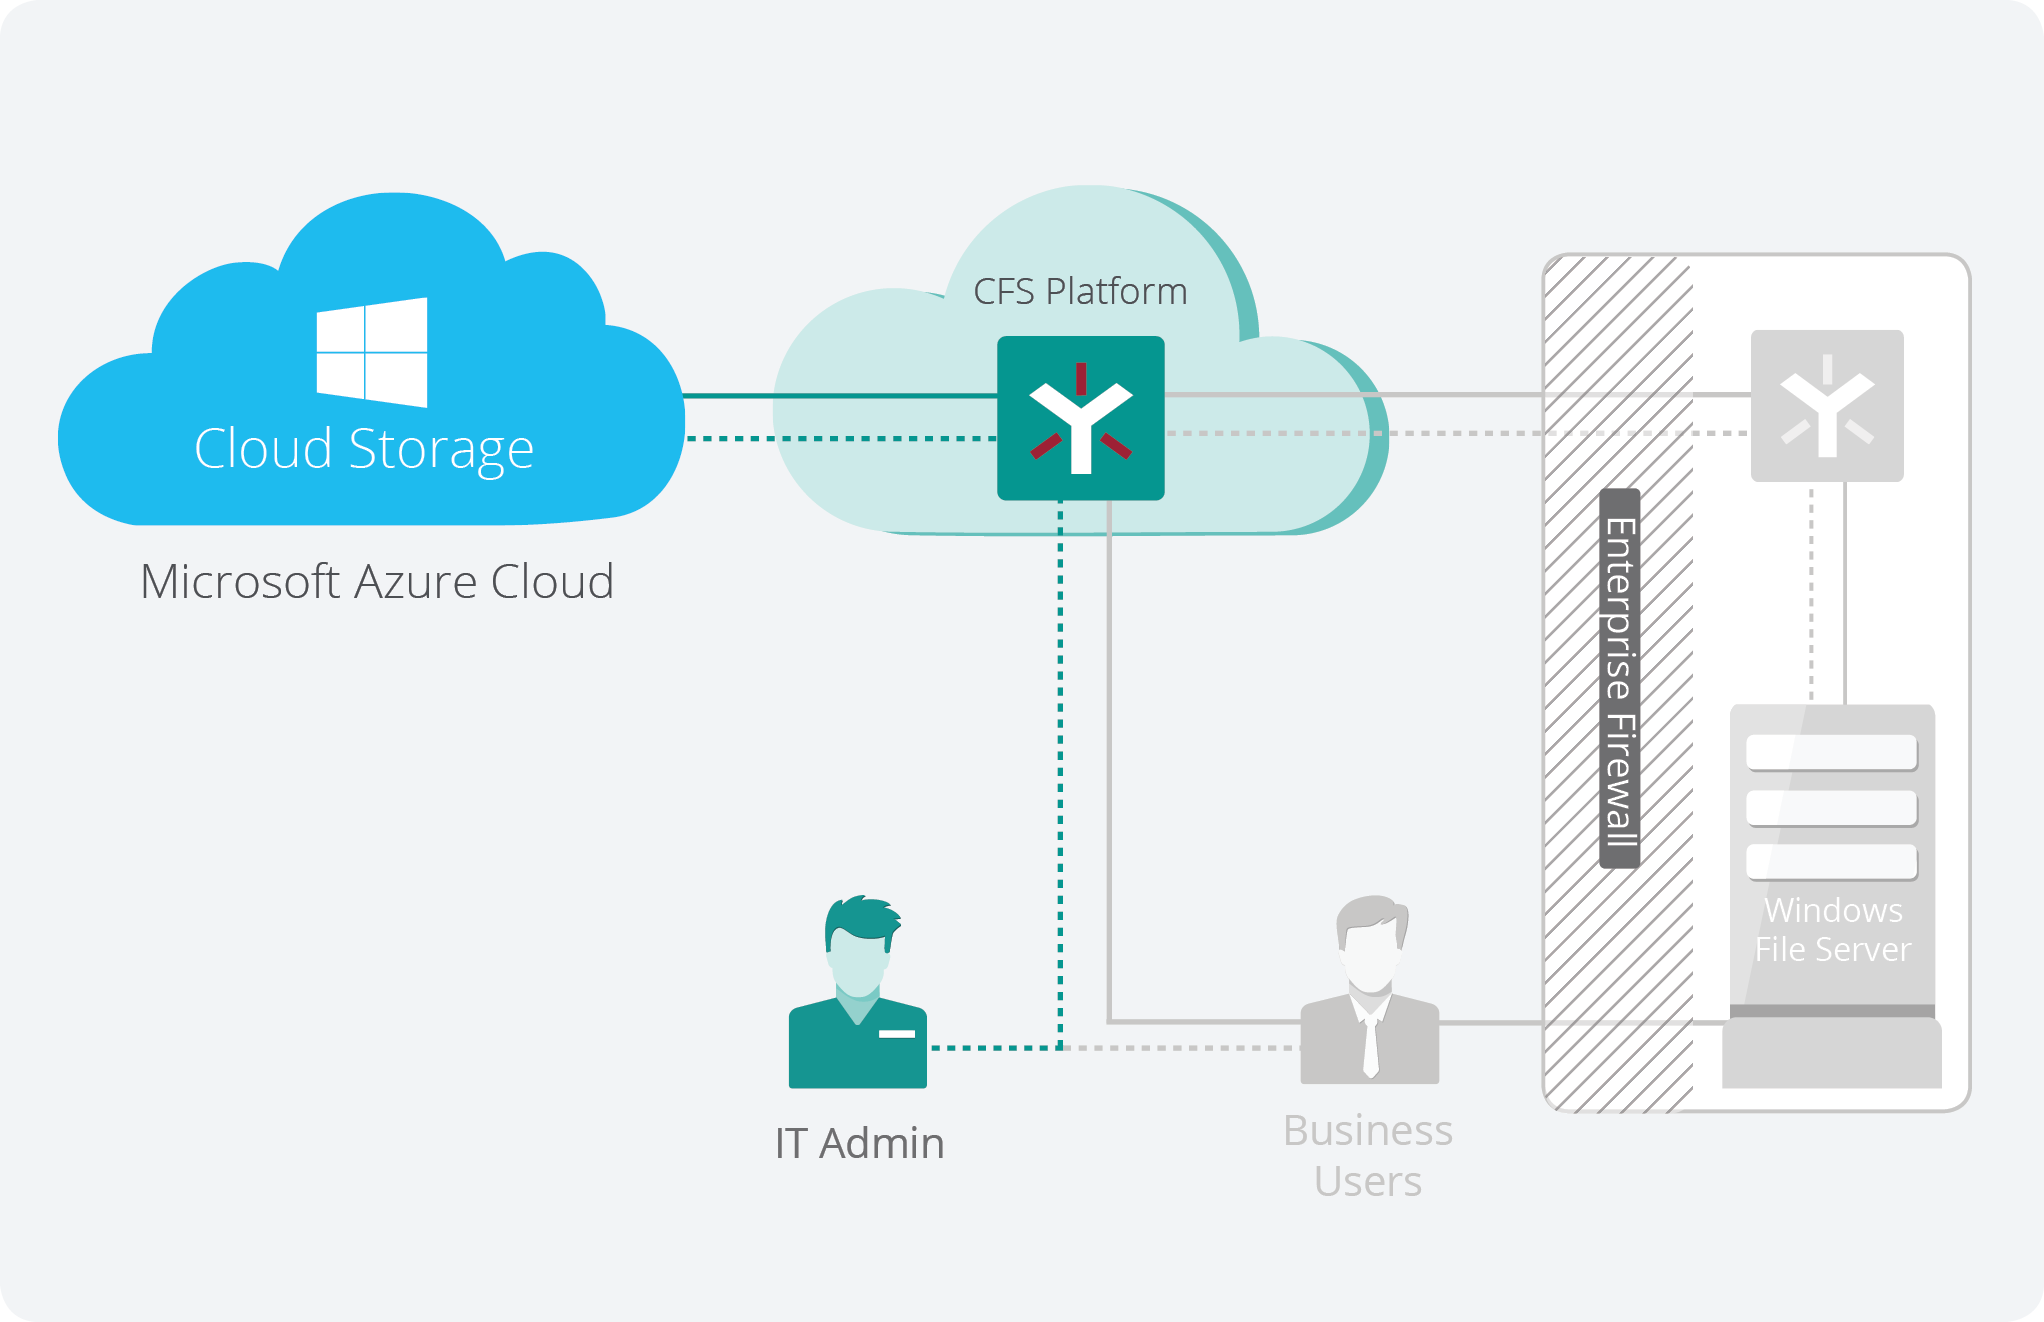 Pat sets up Egnyte to use his existing Azure Cloud Storage account to gain economies of scale